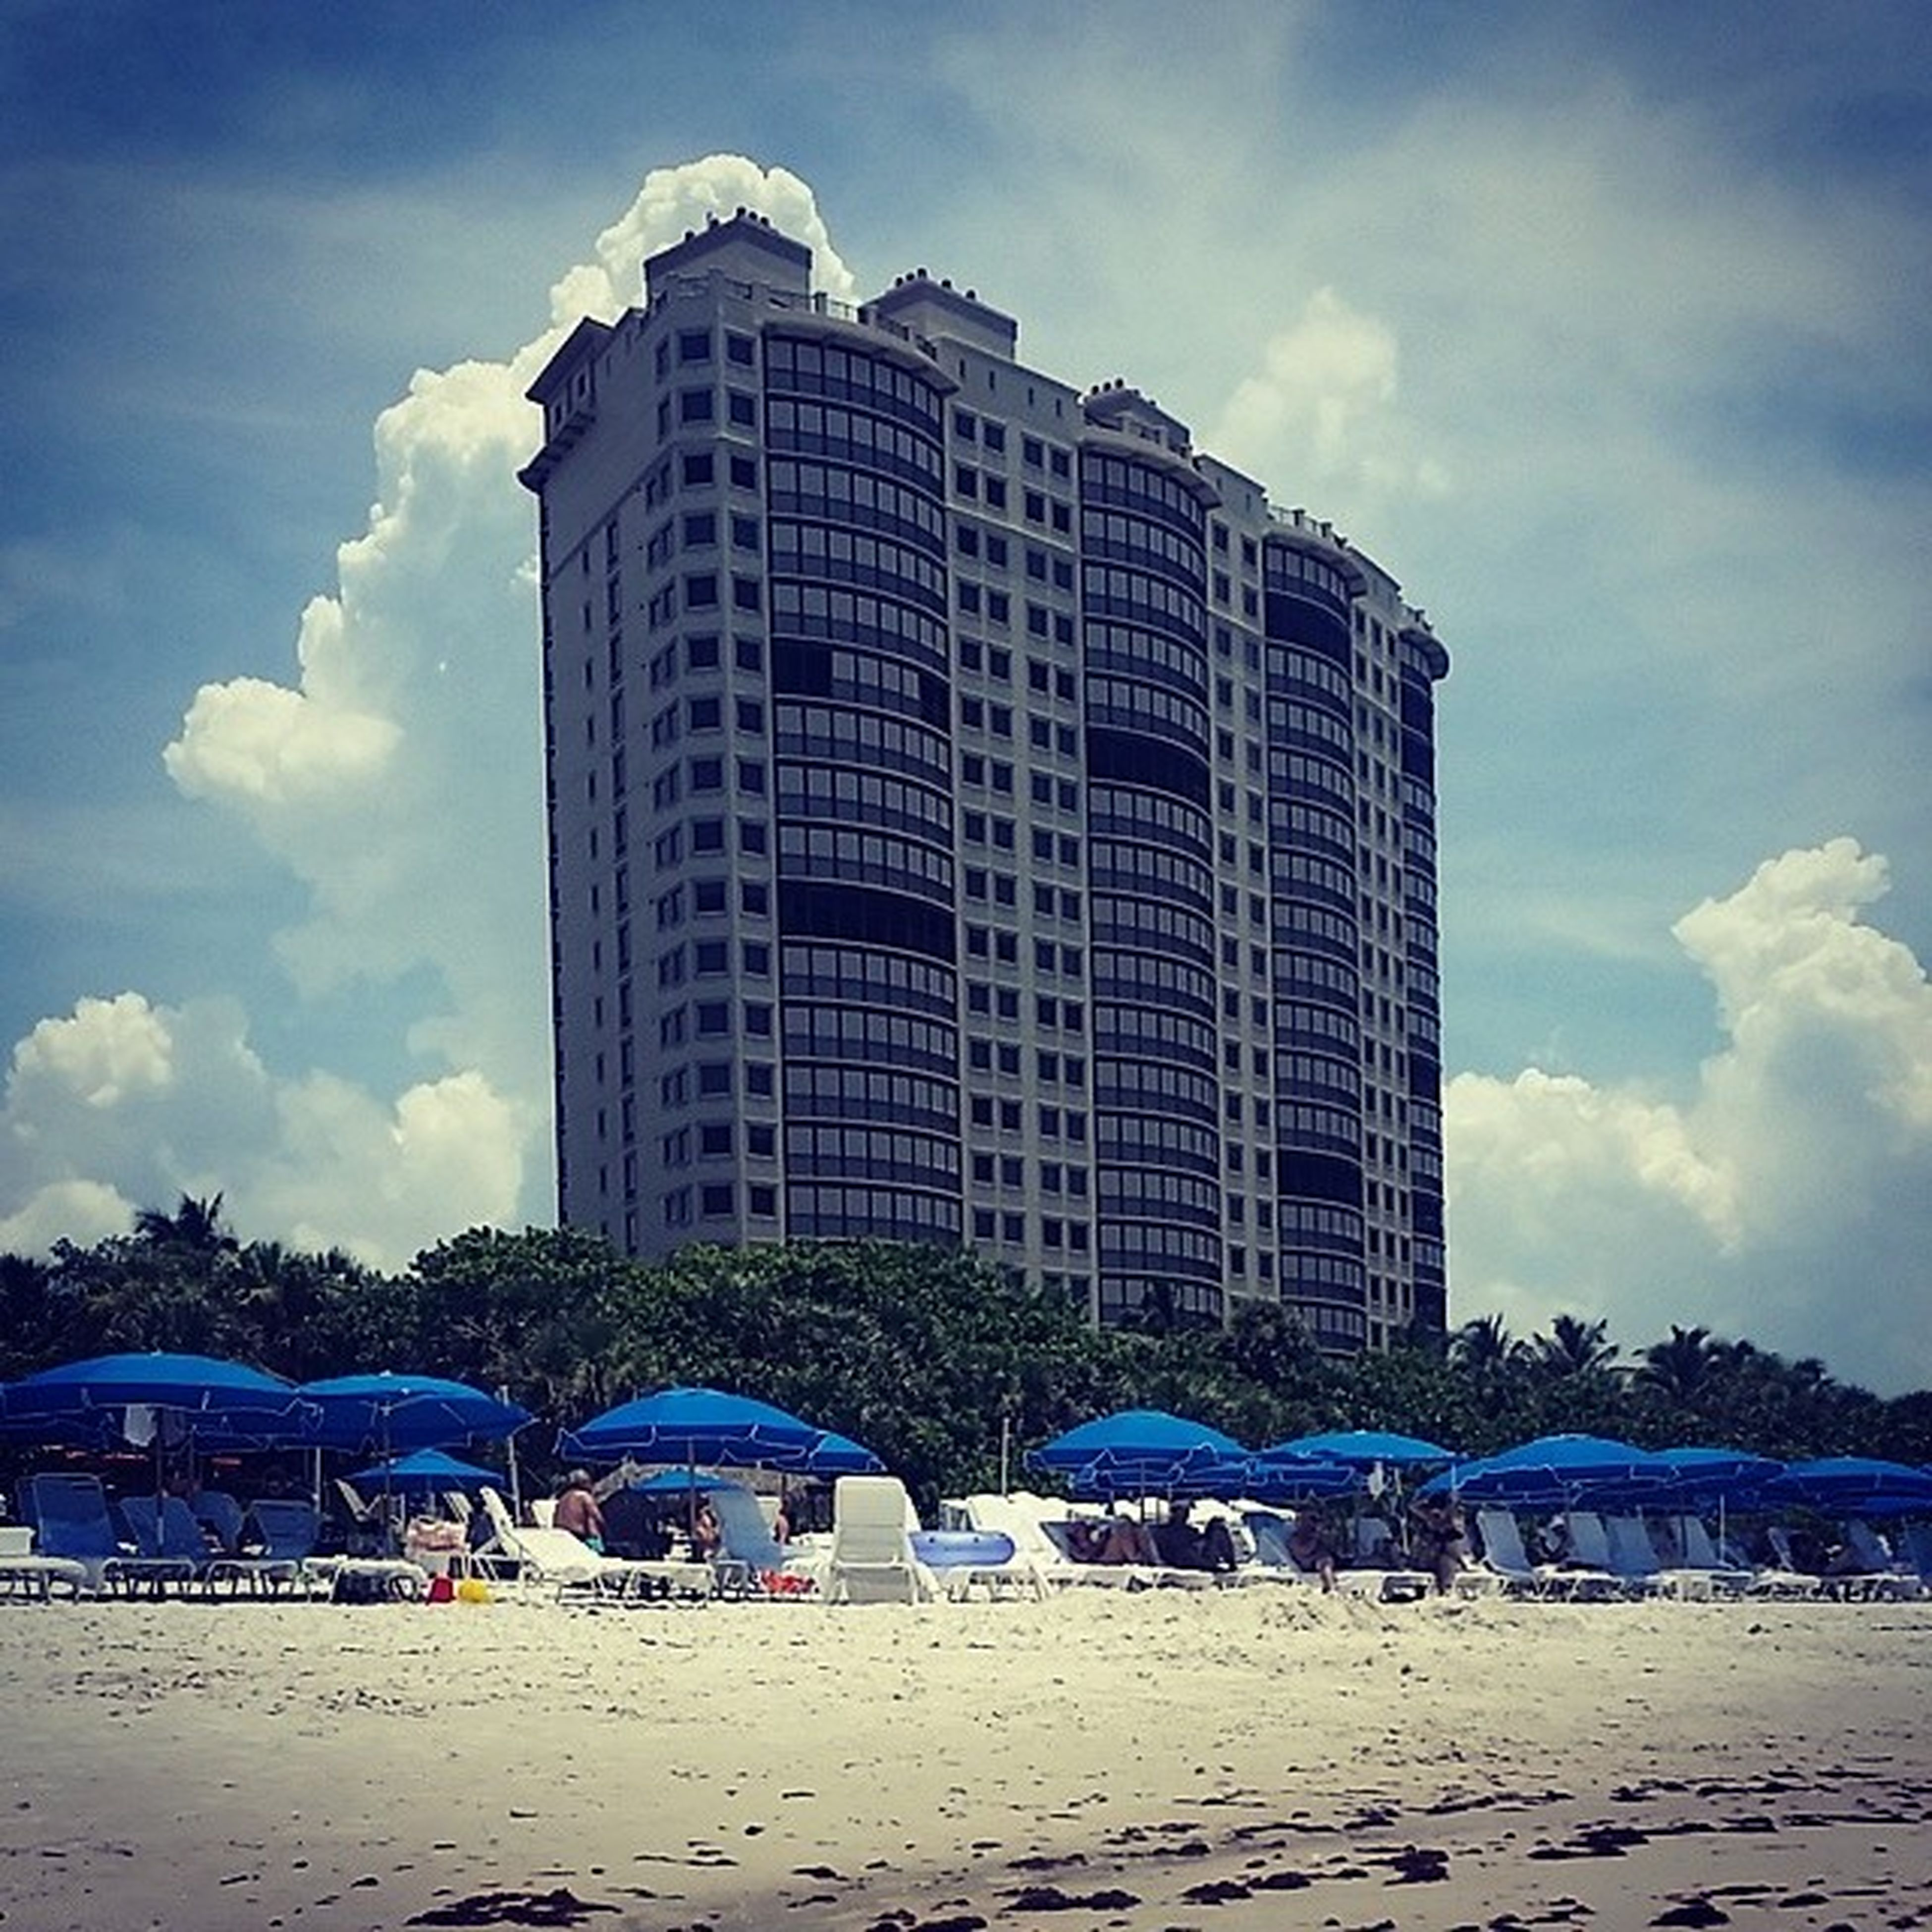 building exterior, beach, architecture, sky, built structure, sand, cloud - sky, shore, city, cloud, sea, day, vacations, chair, water, cloudy, outdoors, sunlight, blue, incidental people